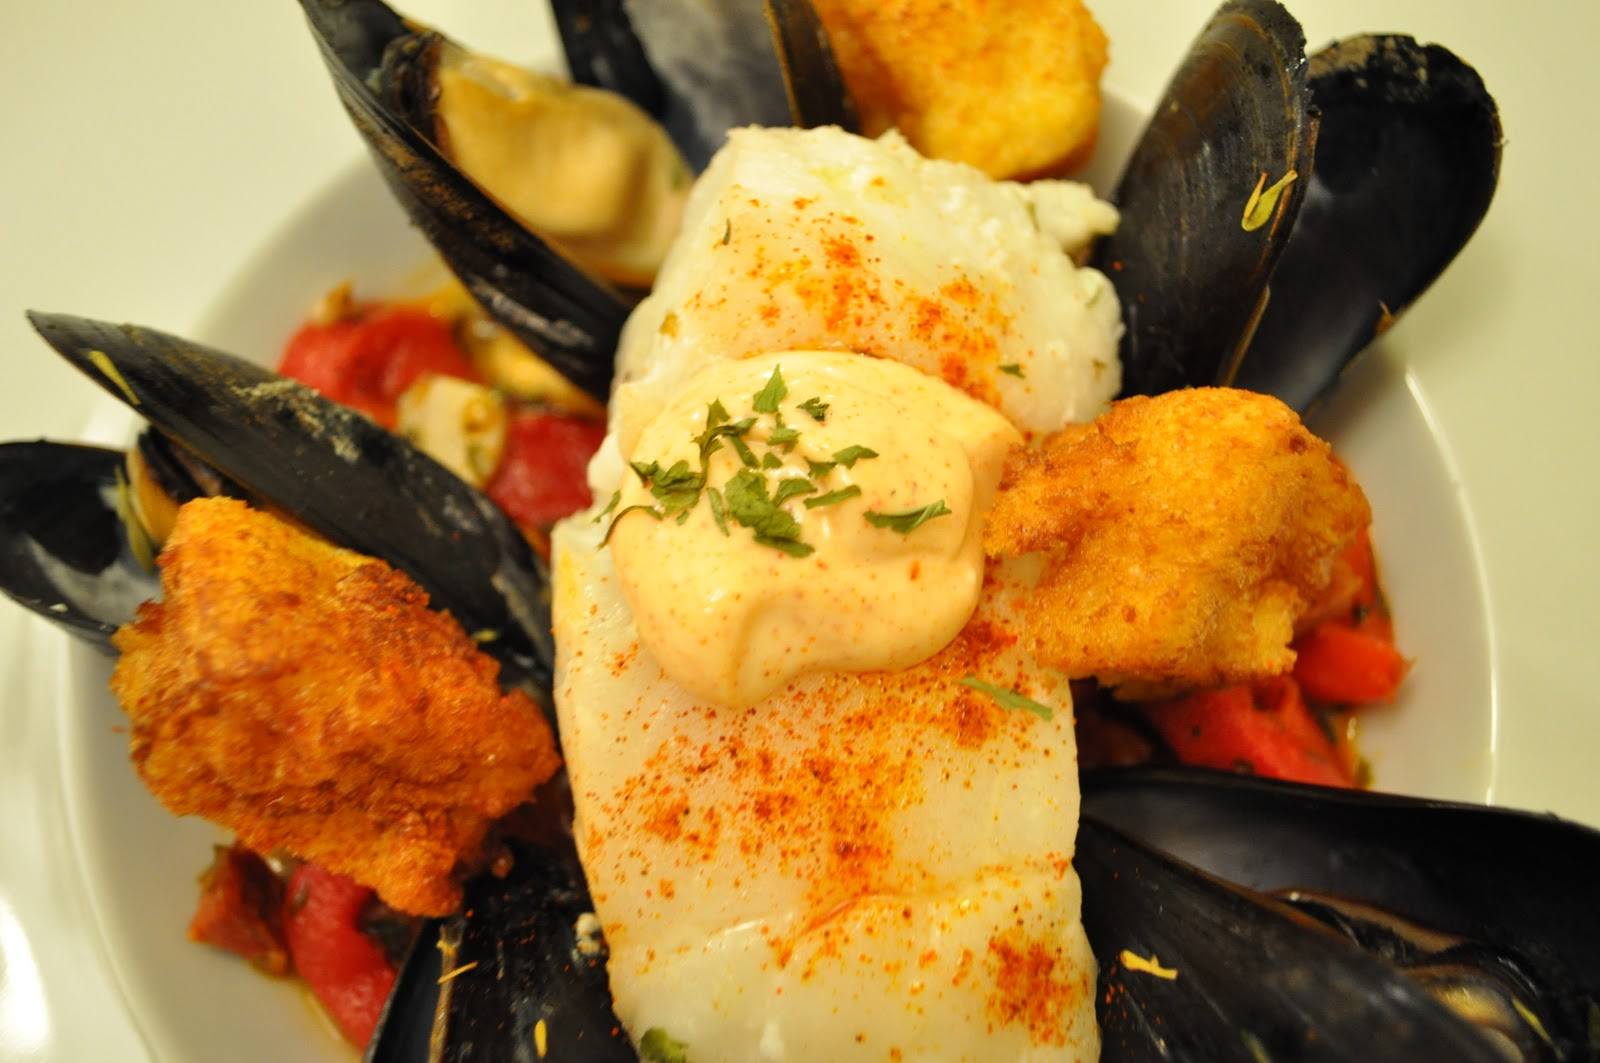 with Friends: Cod with Mussels, Chorizo, Croutons and Saffron Mayo